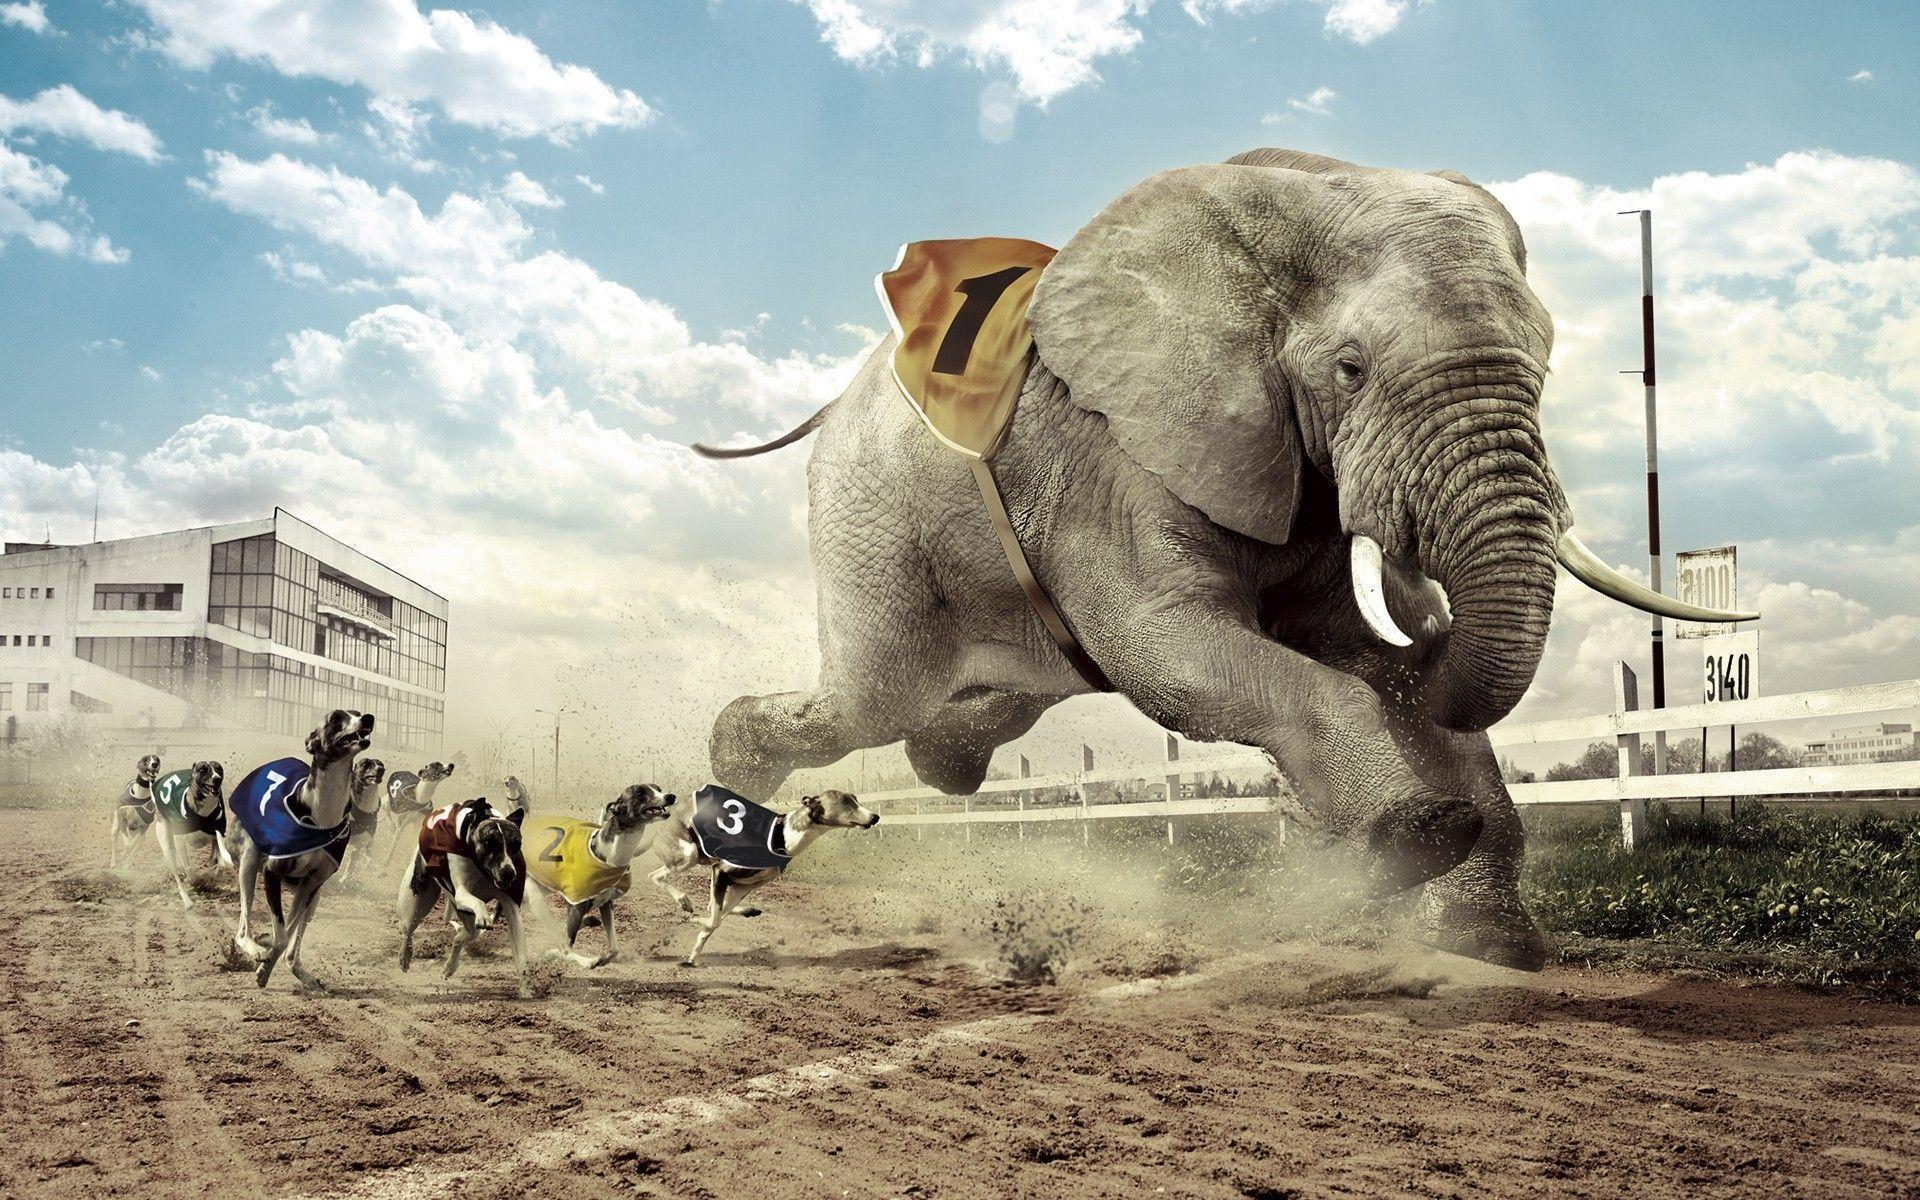 Dogs racing an elephant Wallpaper #